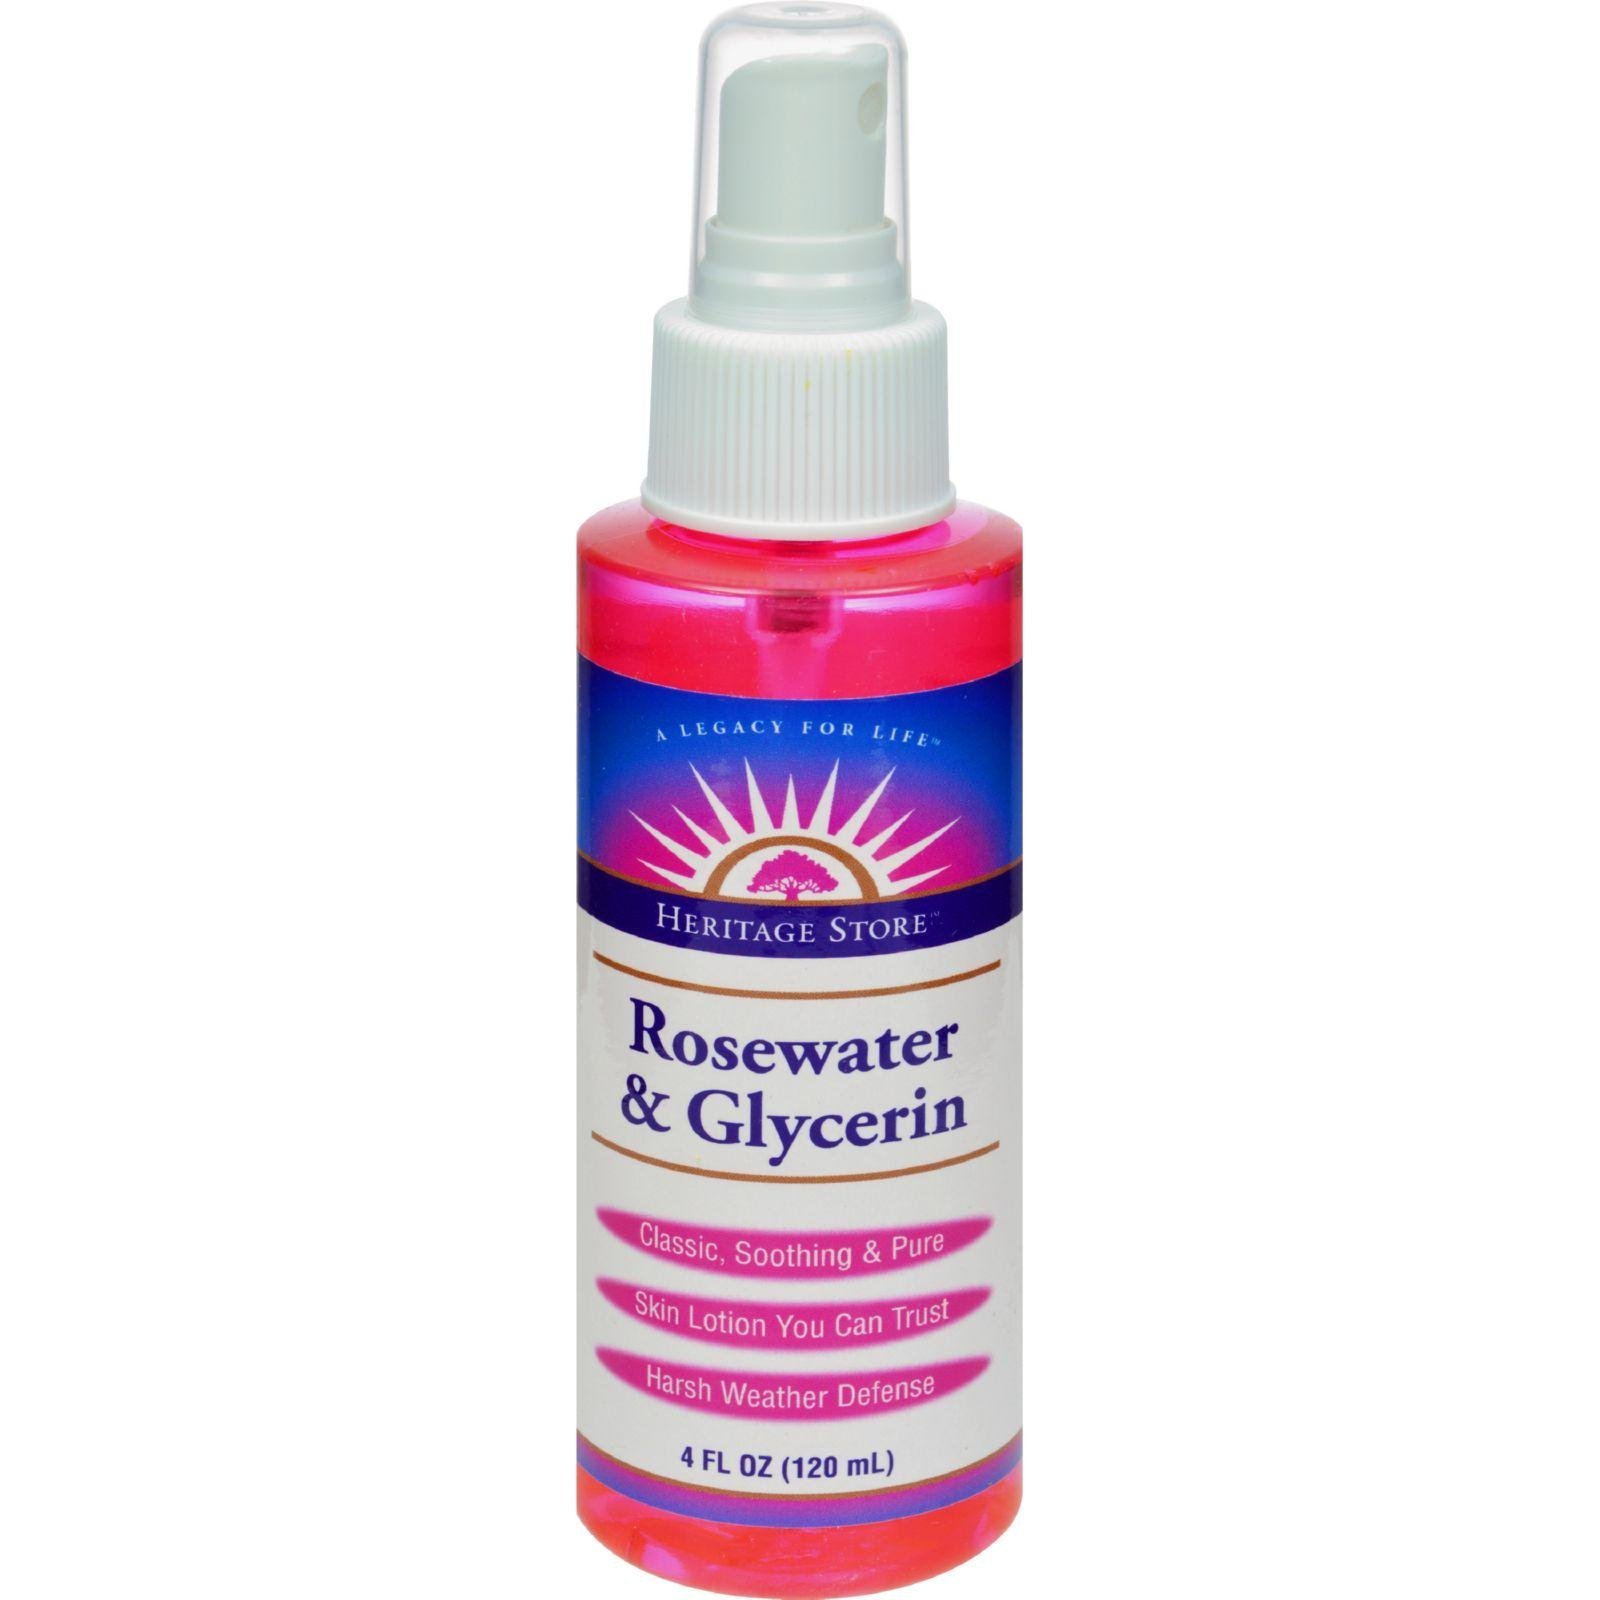 Rosewater Mist Whole Foods